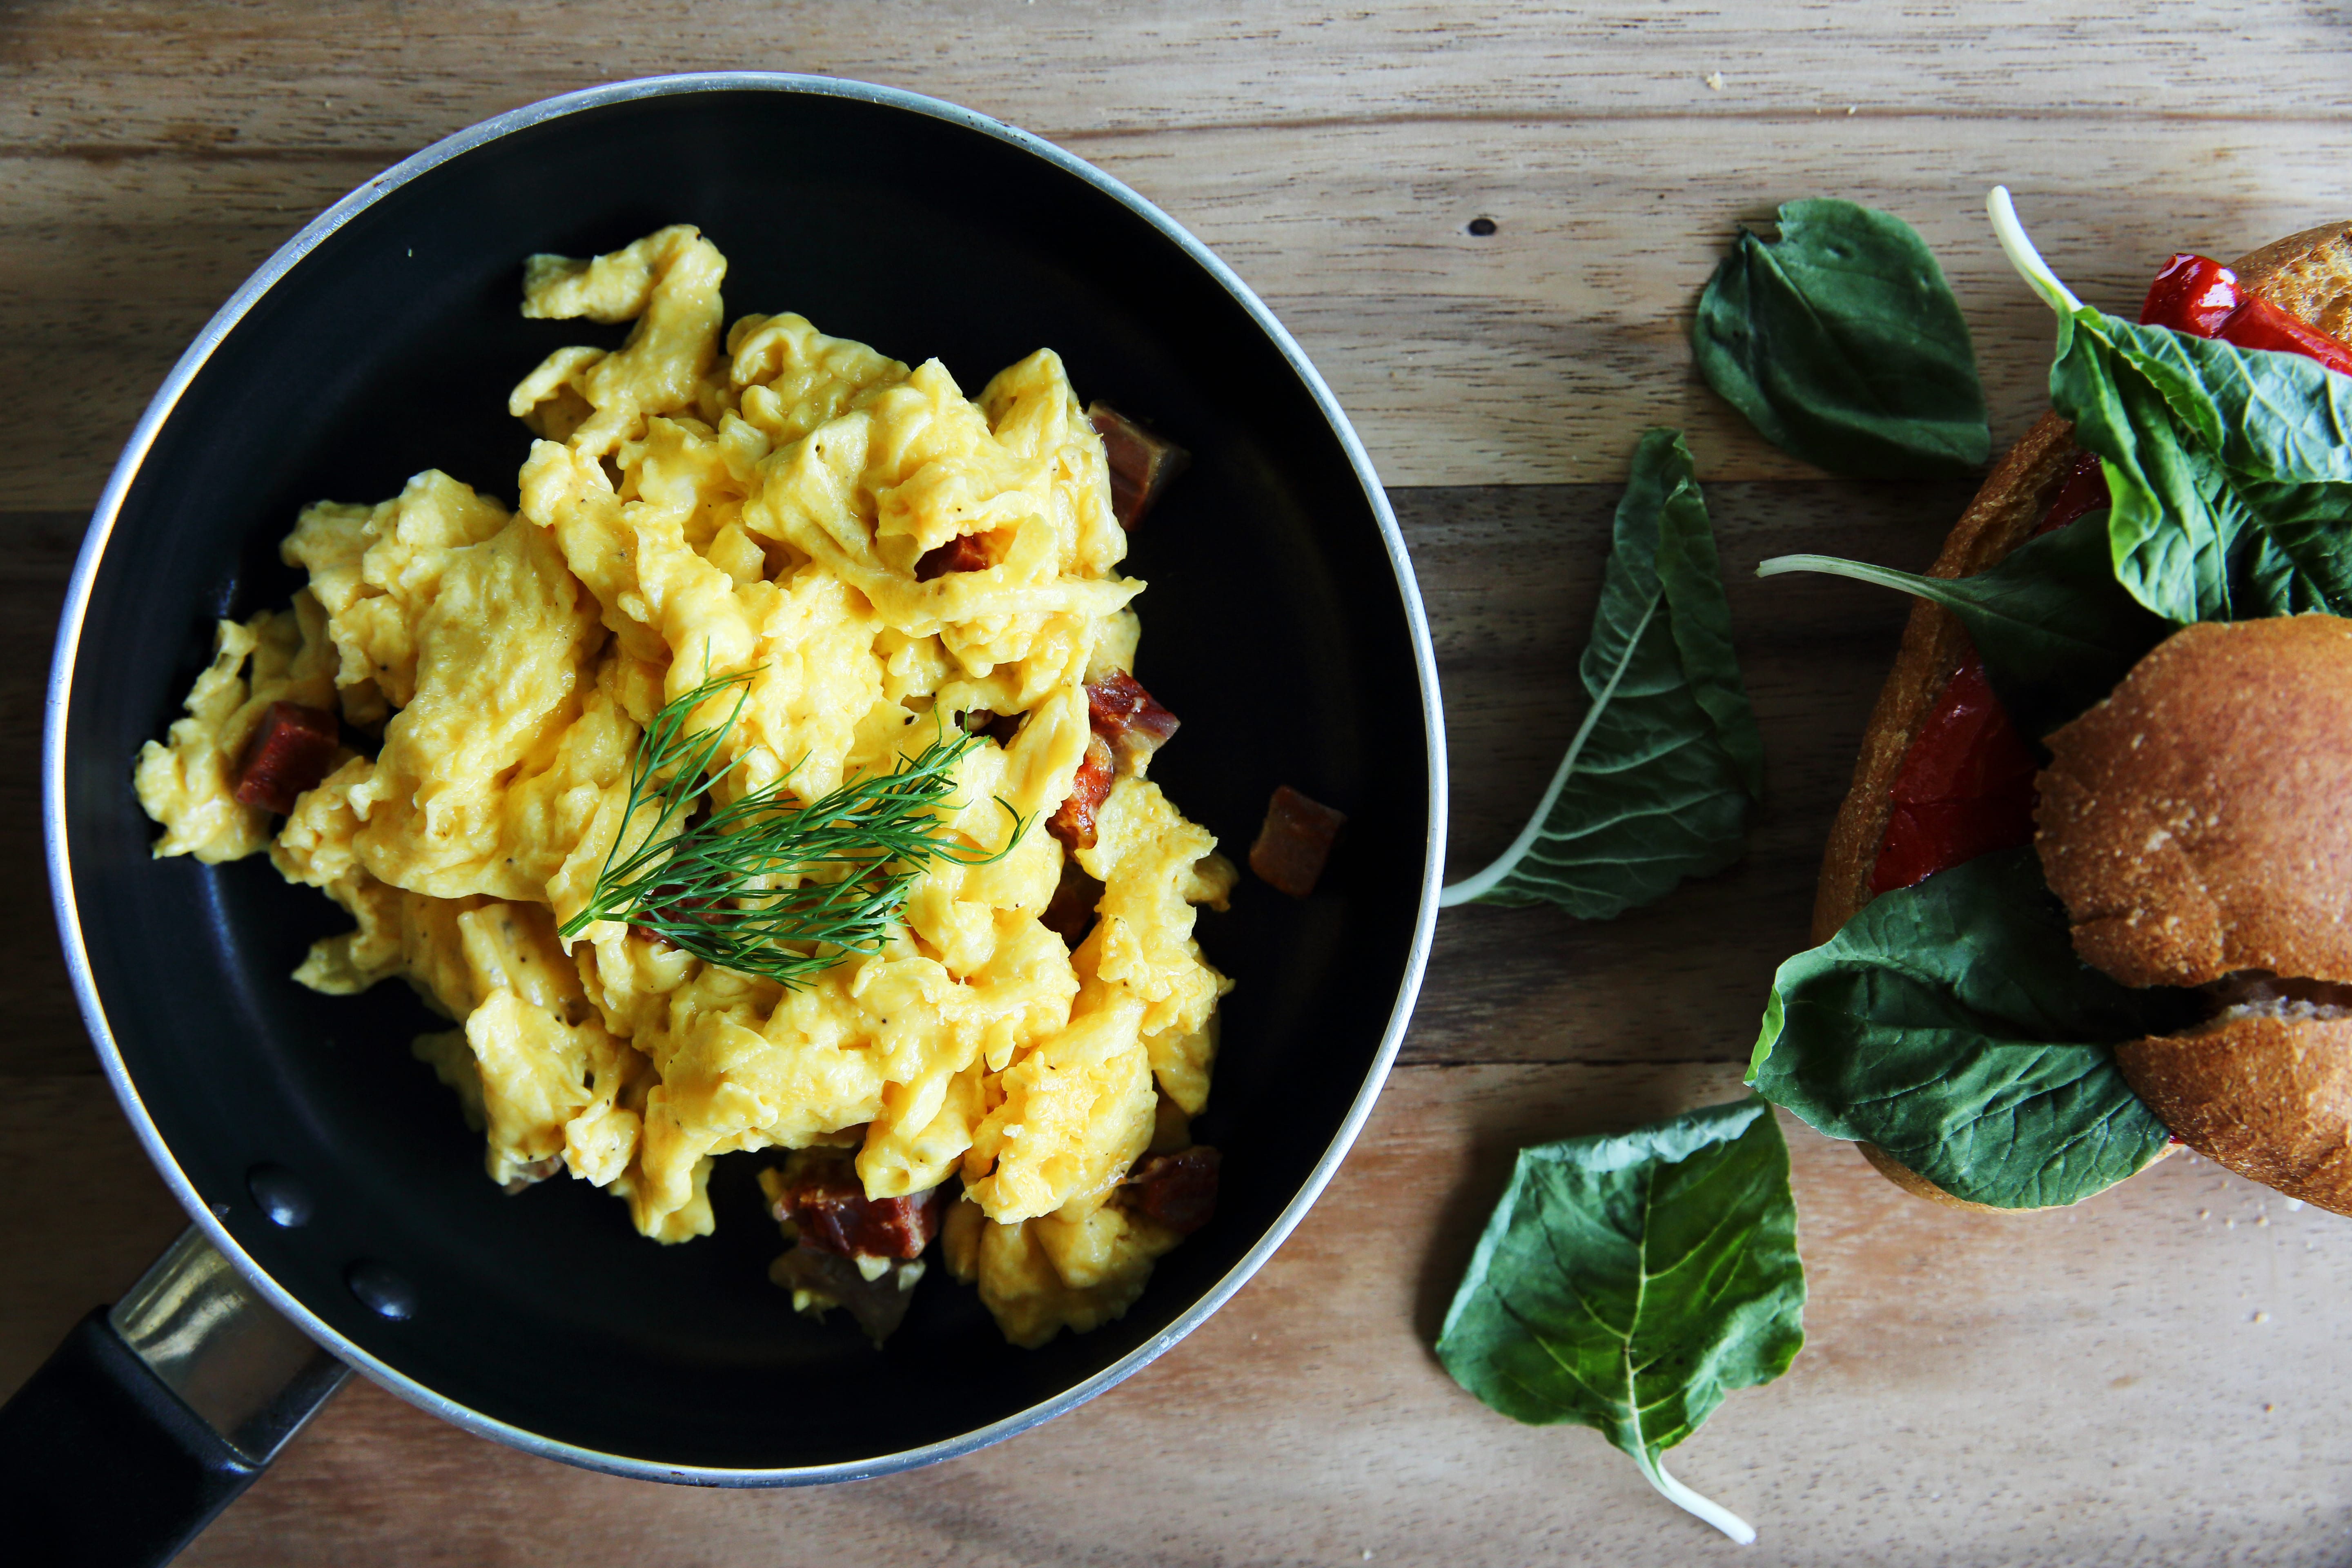 A pan of scrambled eggs with added herbs. Creating a delicious hemp breakfast might be as simple as adding hemp hearts or infusing CBD oil into the butter you use to make eggs.